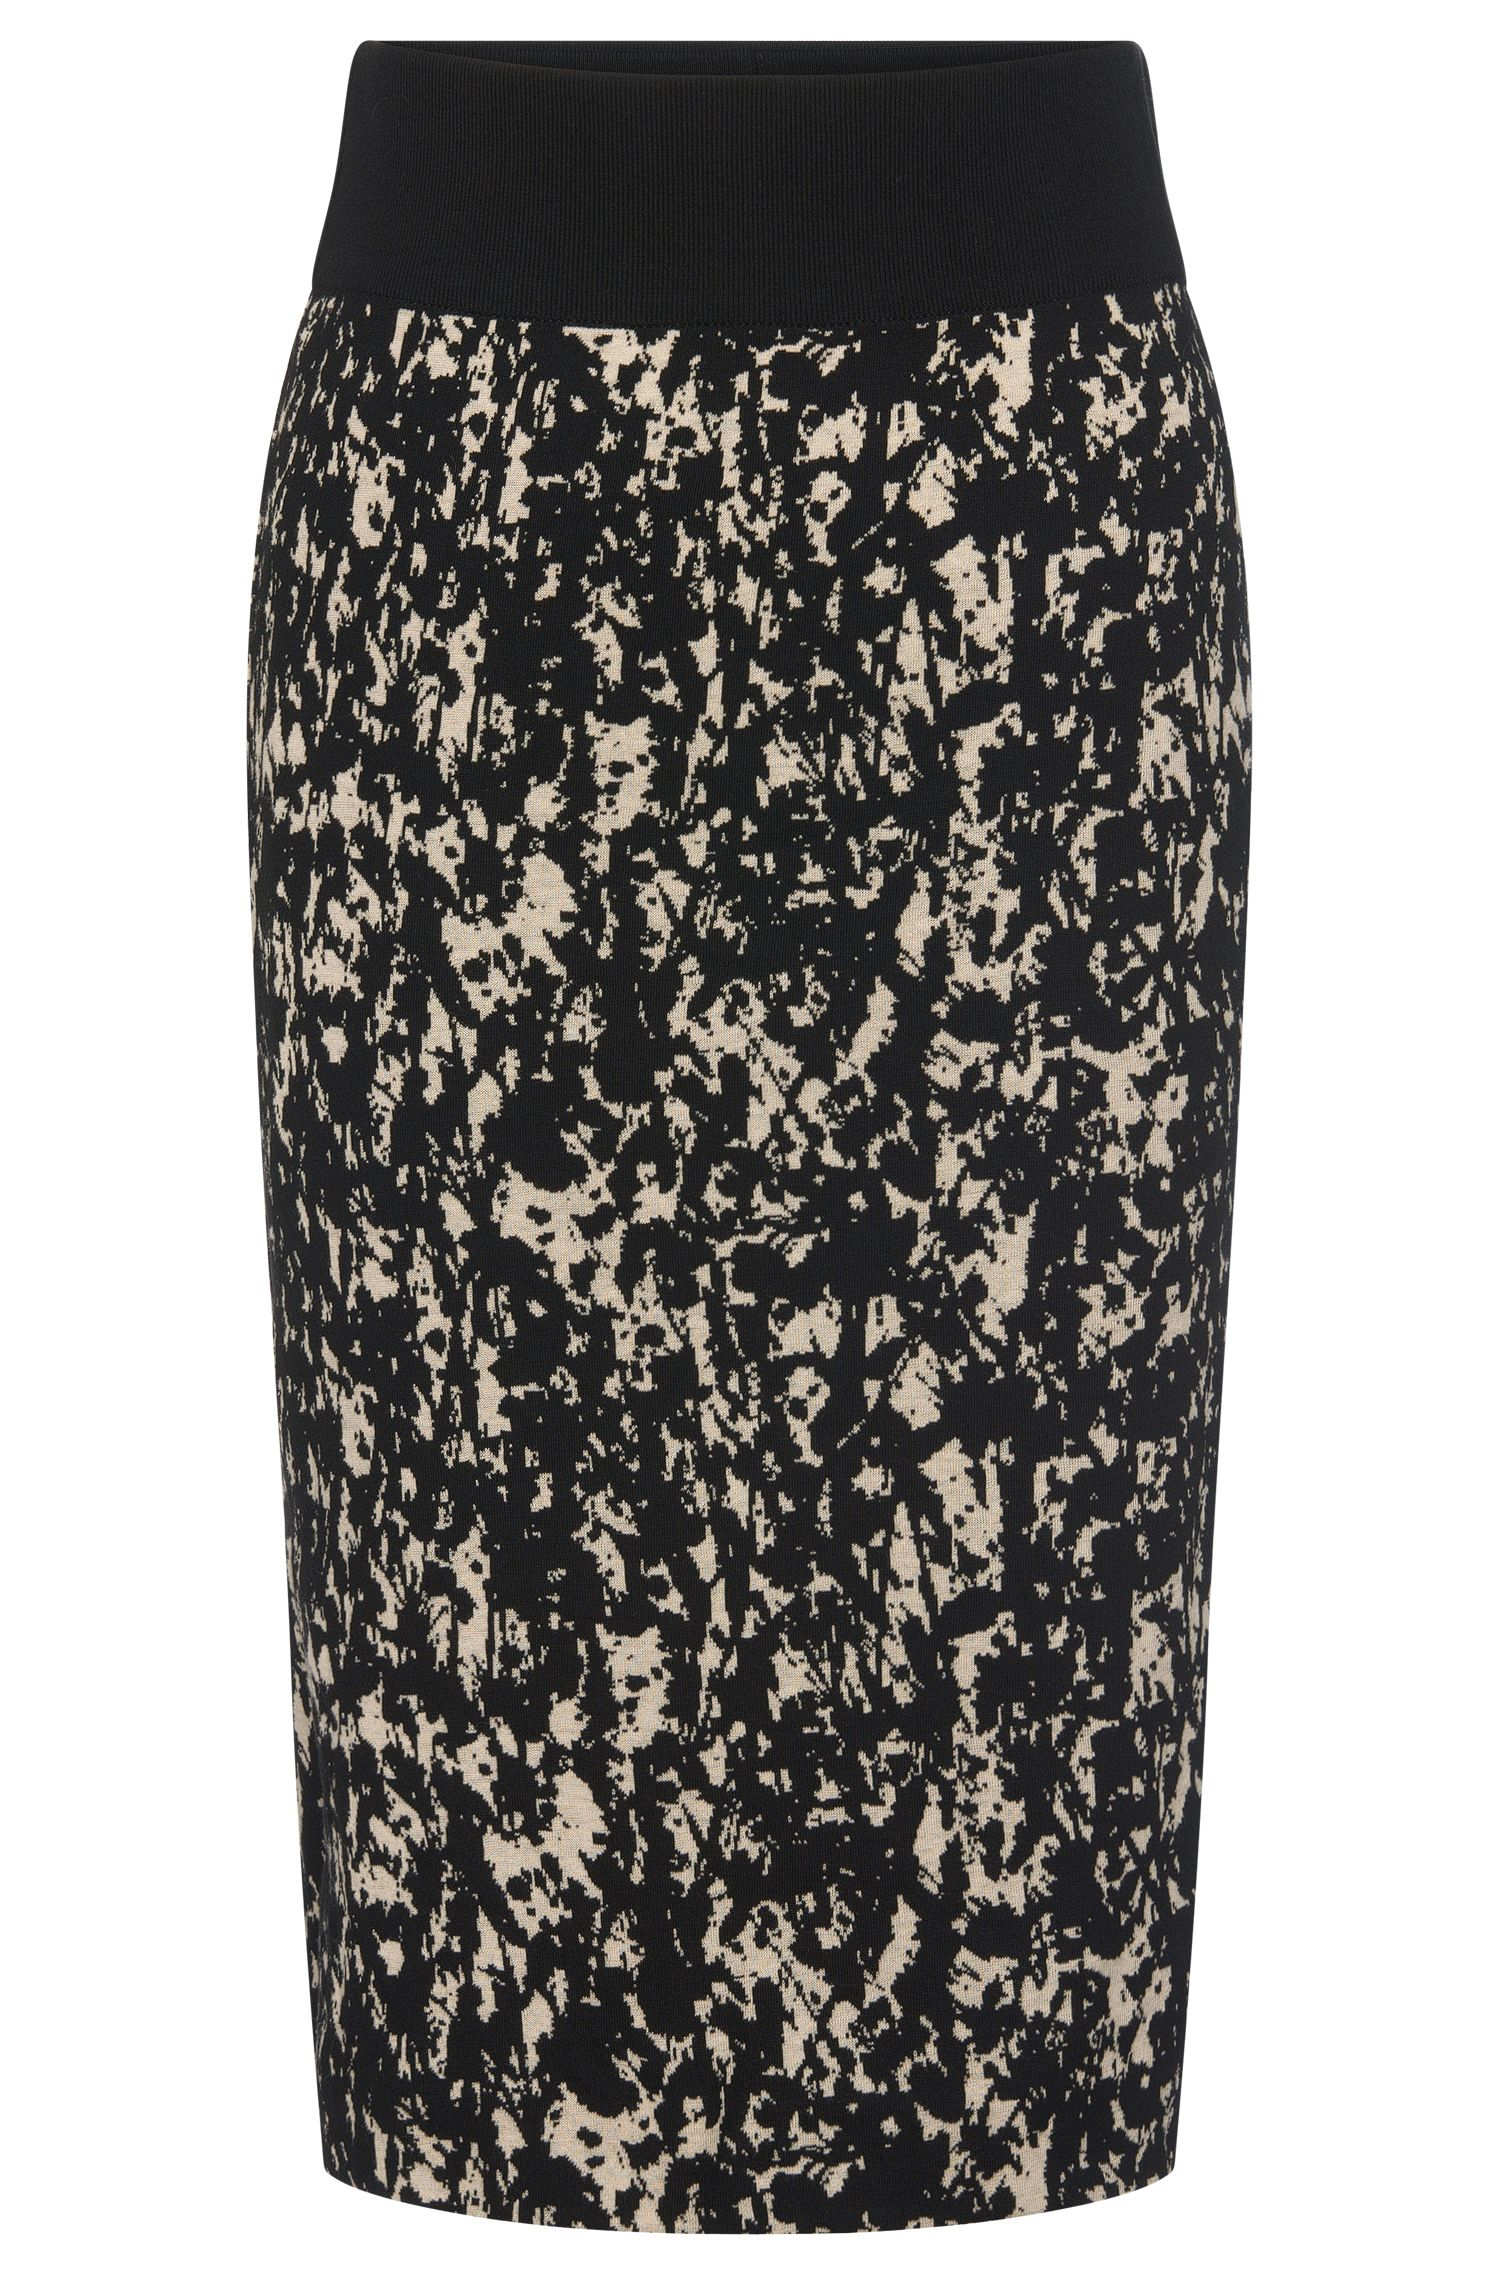 Patterned knitwear skirt in cotton blend with viscose: 'Emkara'